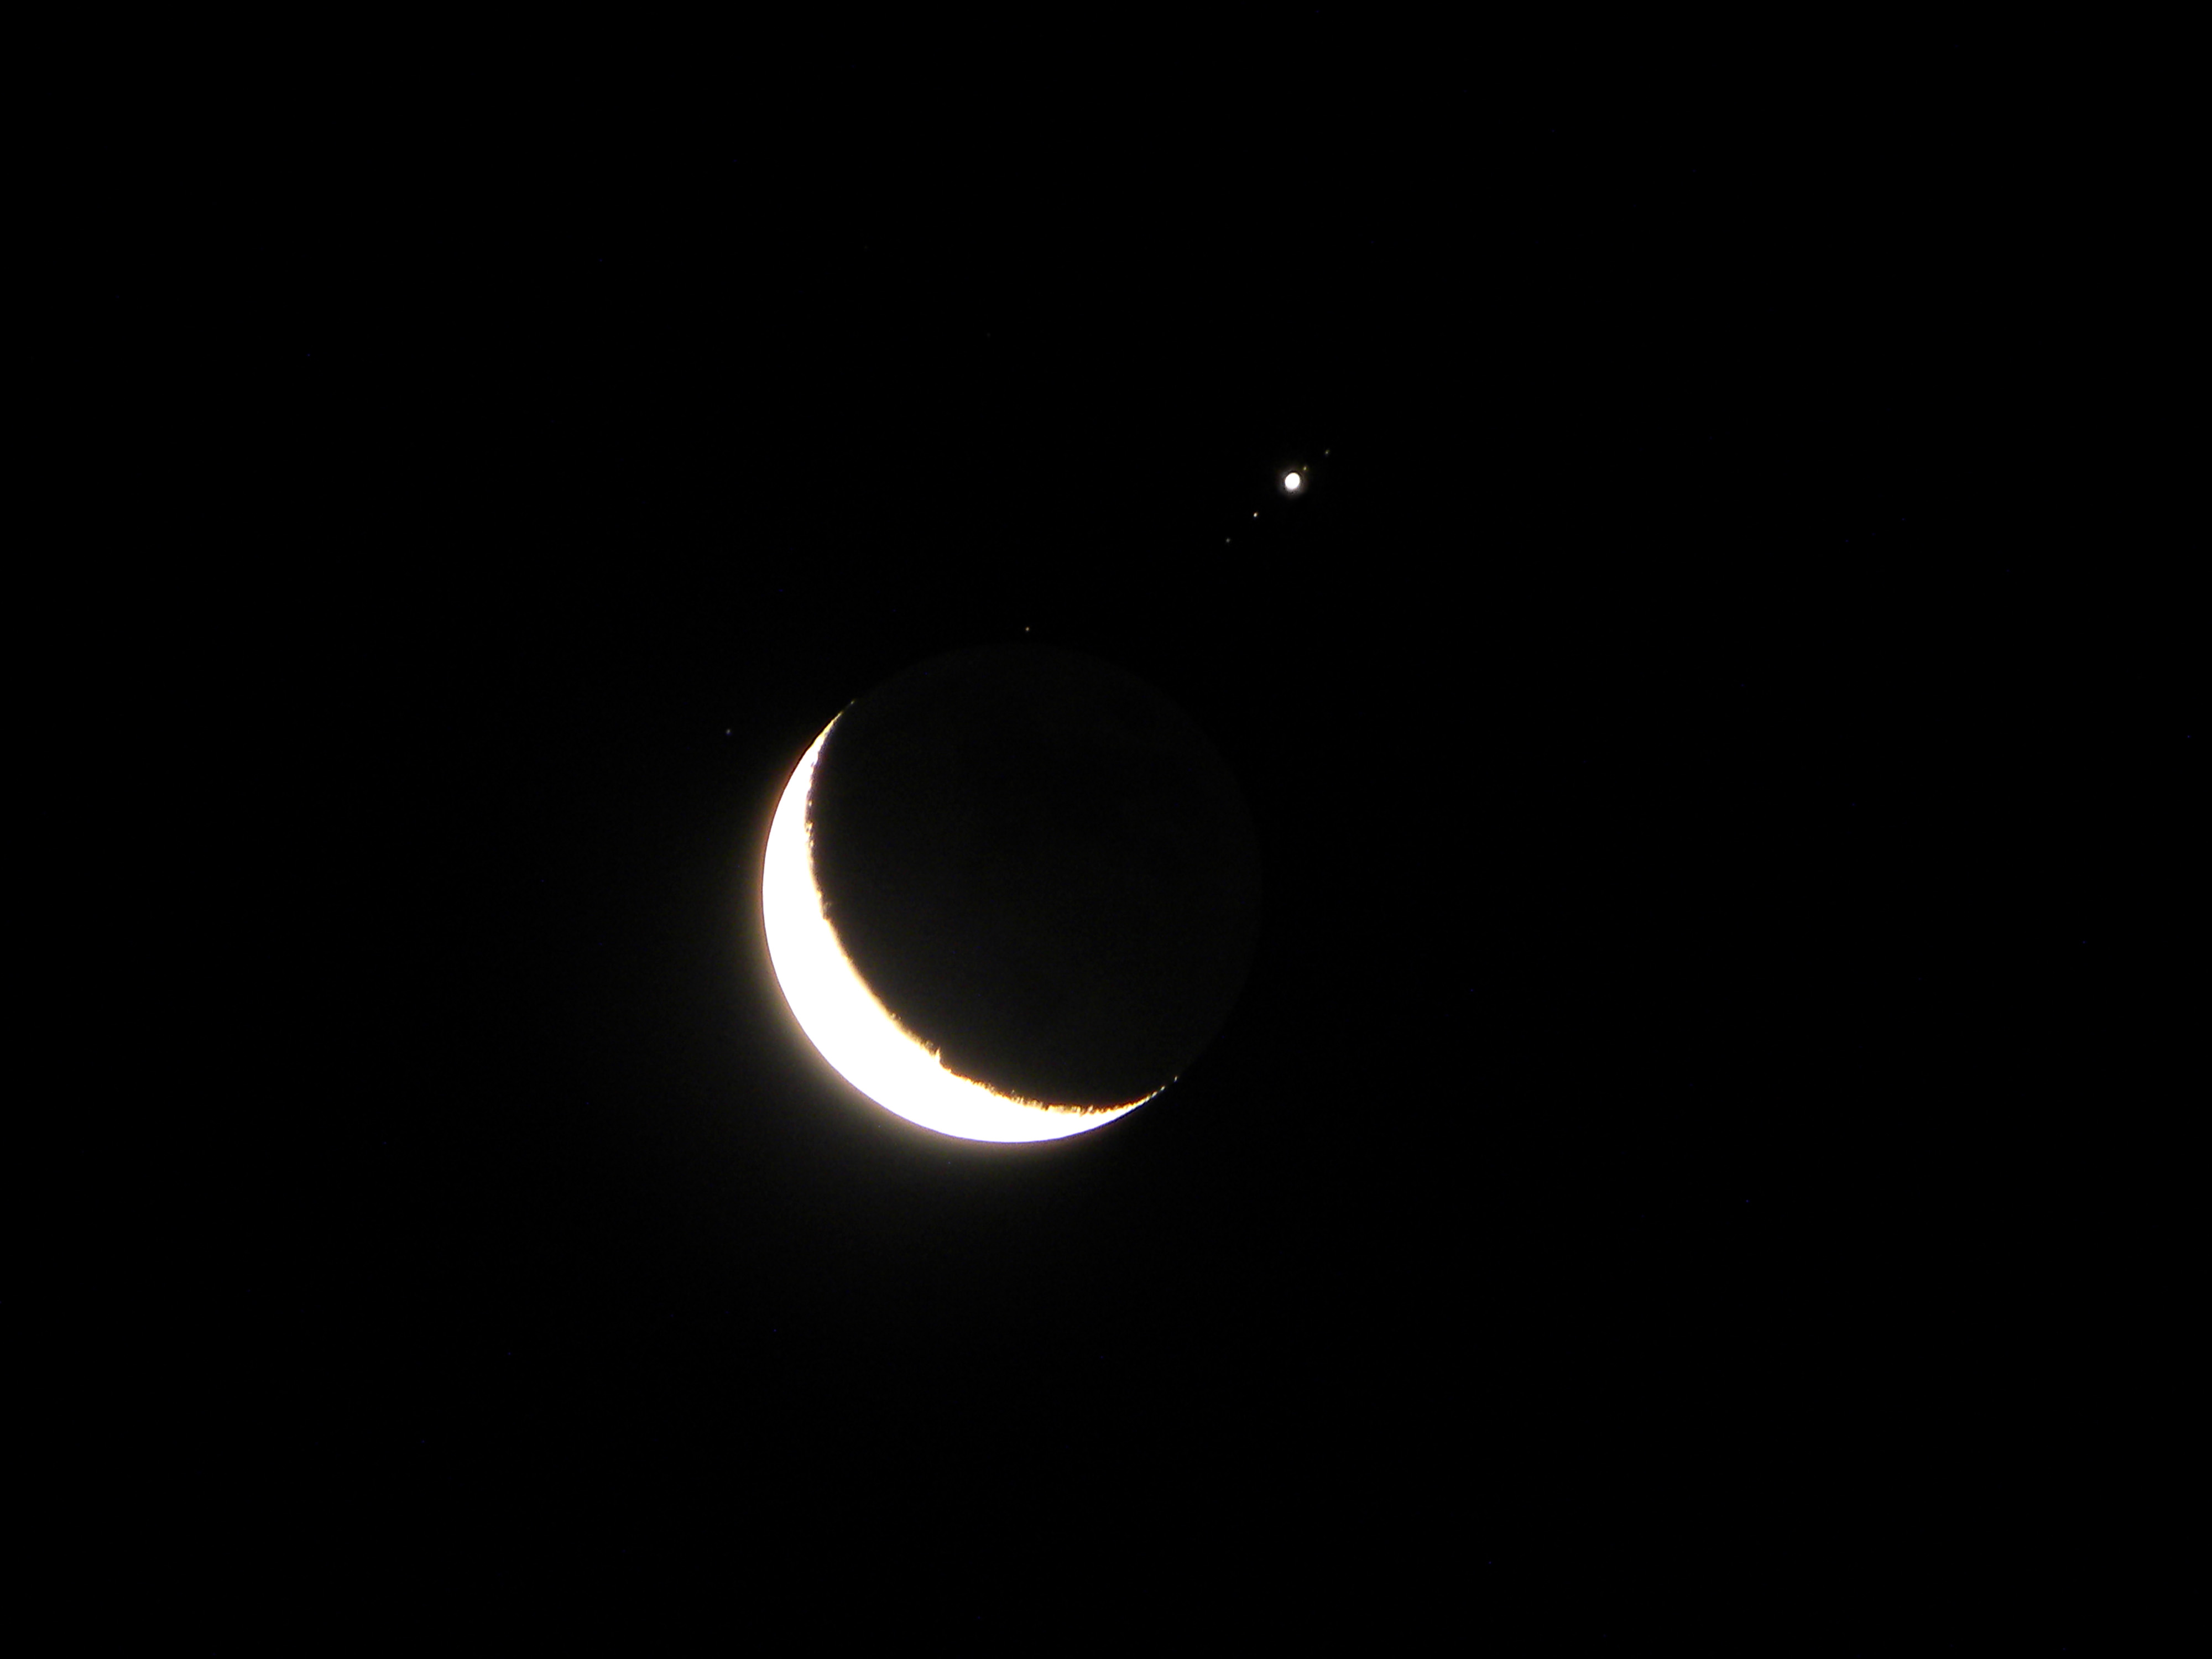 Moon, Jupiter and Jovian Satellites: July 15, 2012